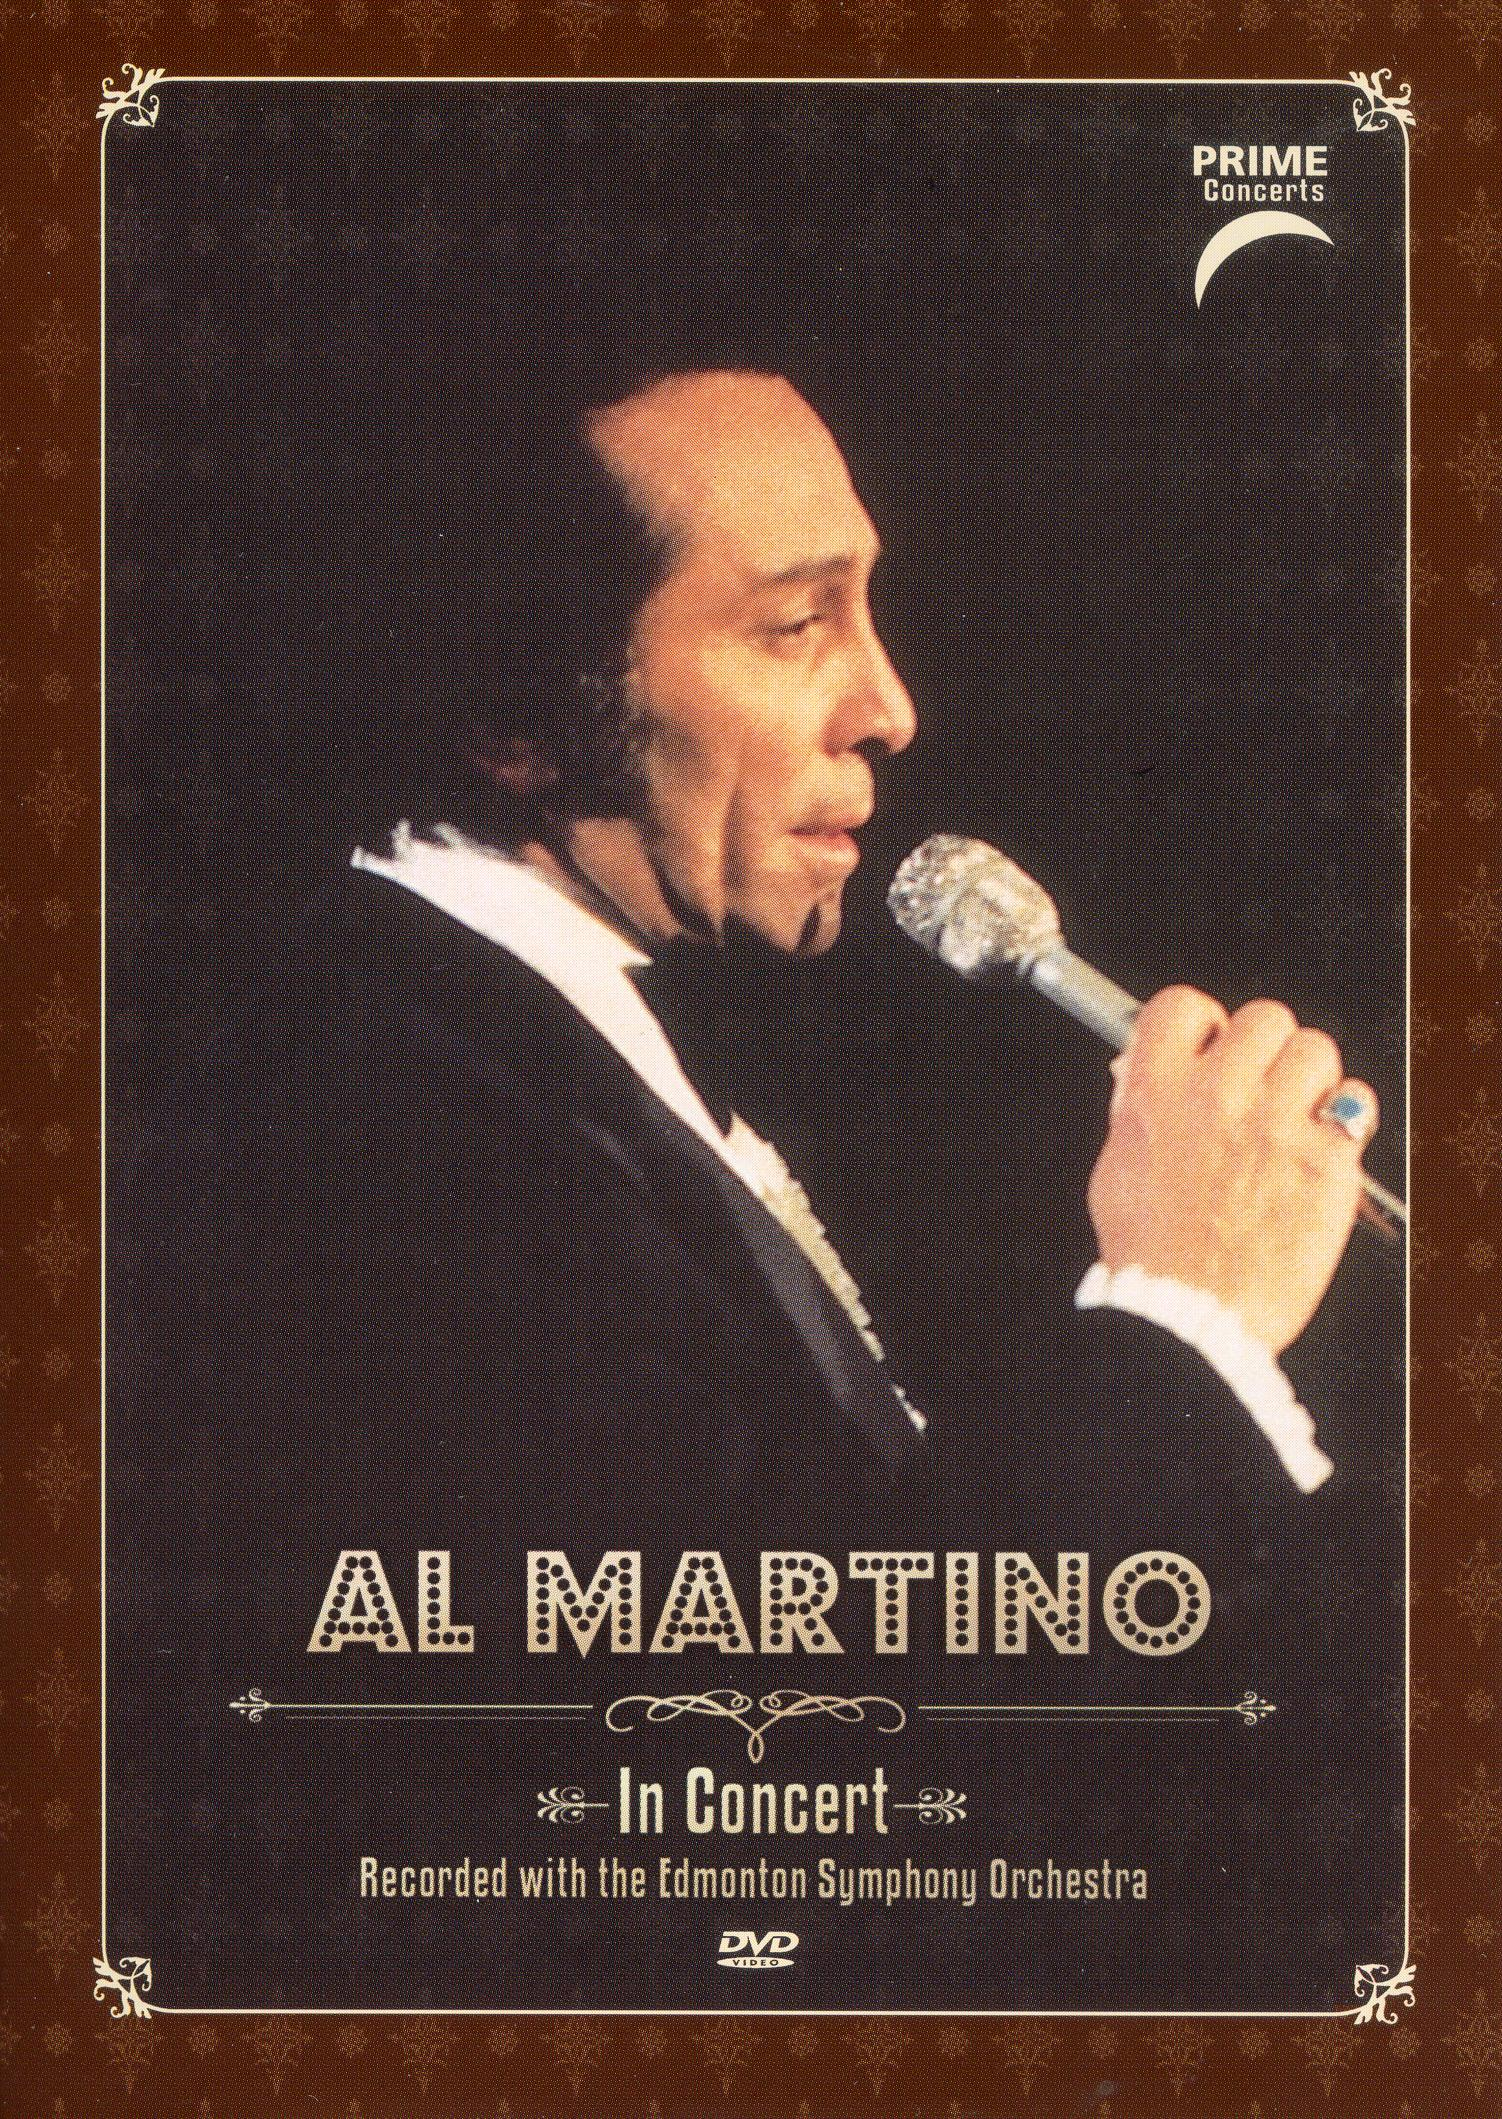 Al Martino: Prime Concerts - In Concert with Edmonton Symphony